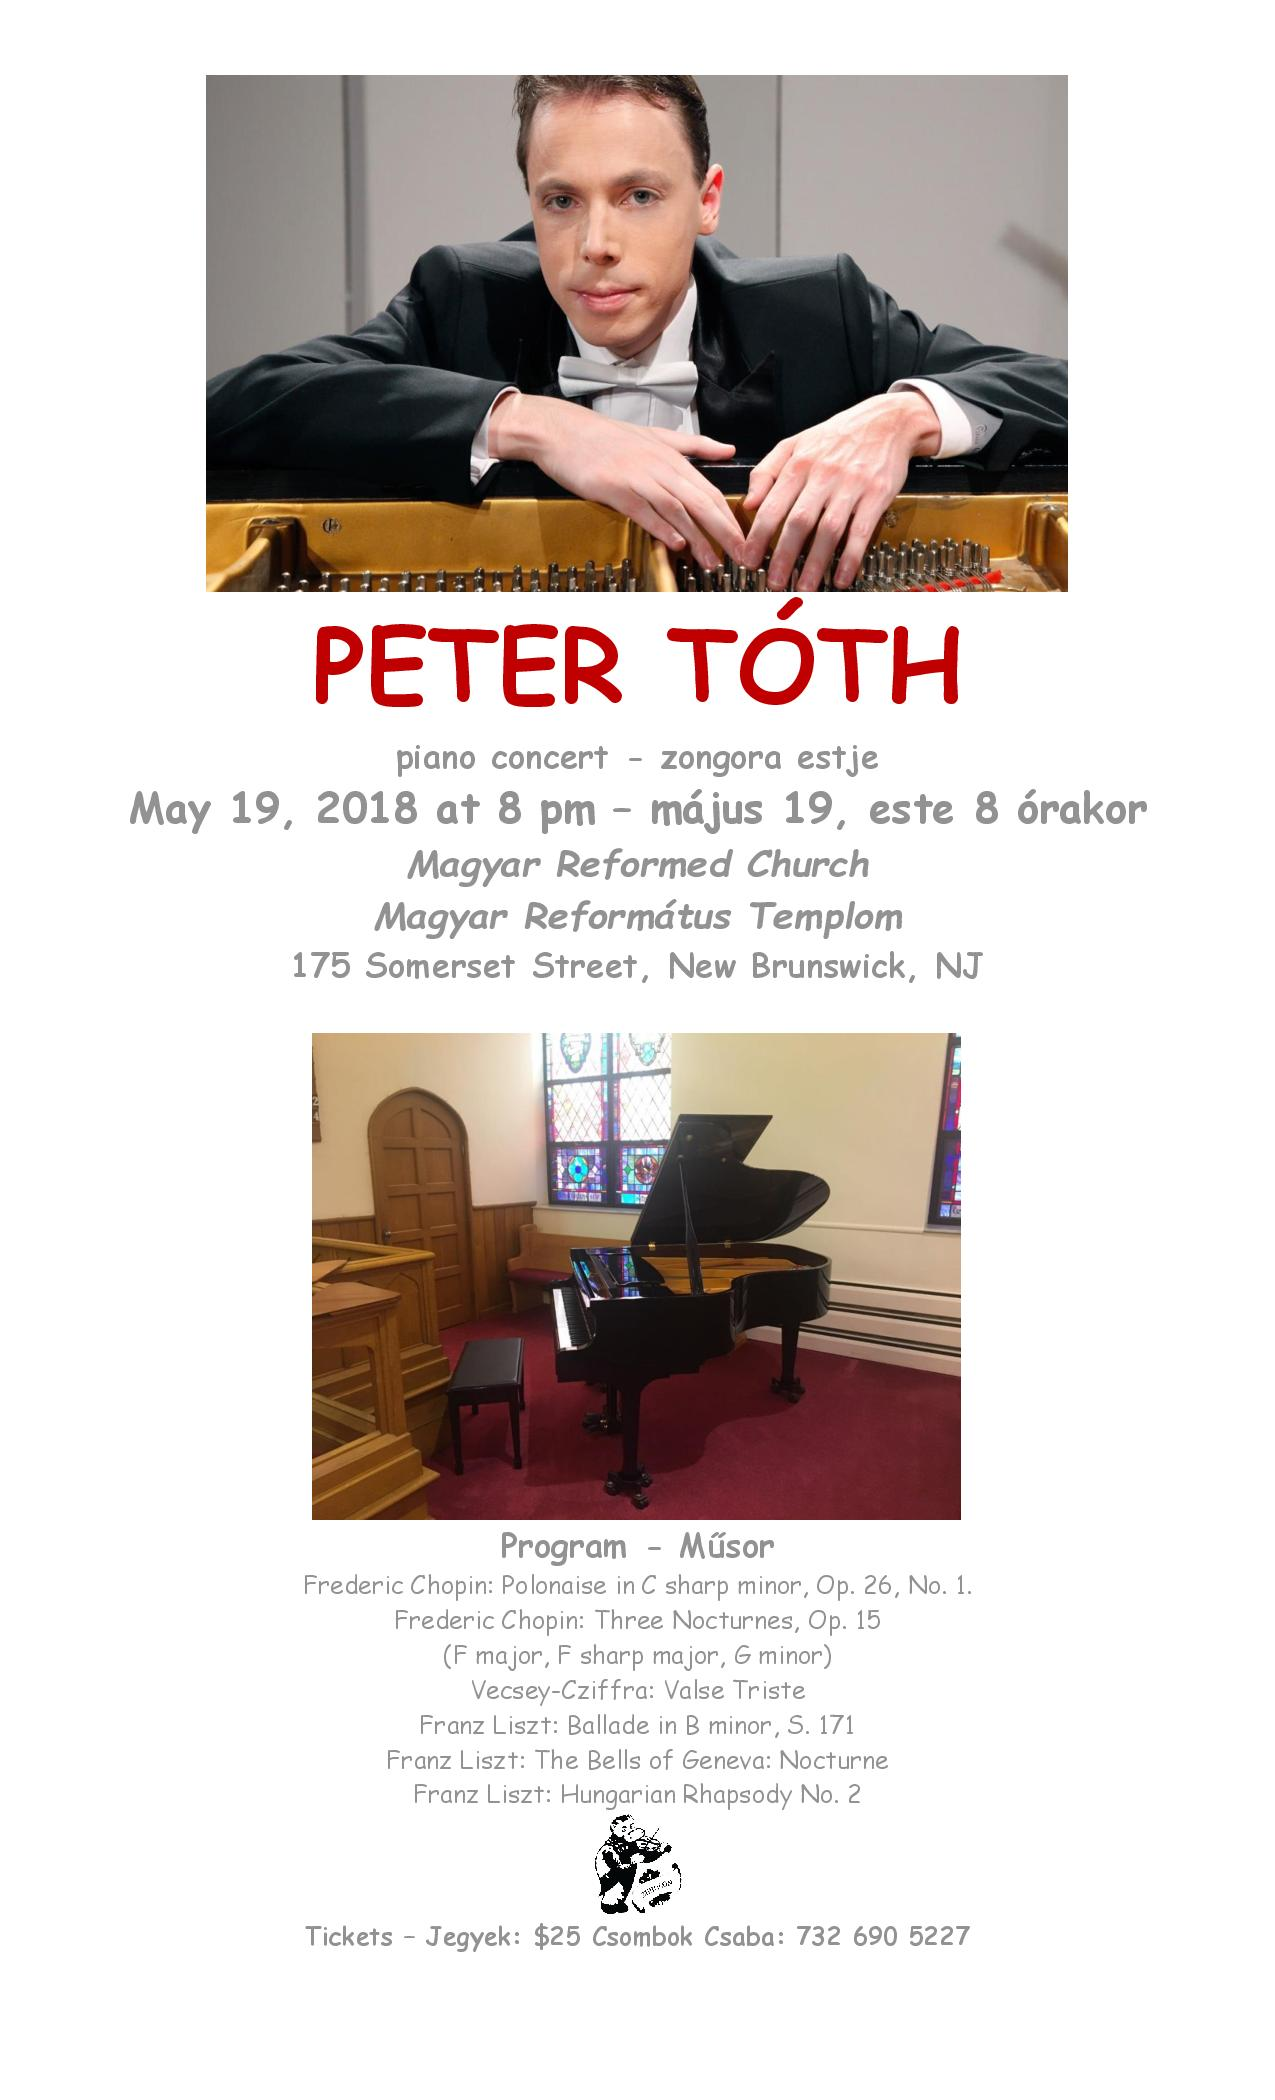 peter toth concert kep